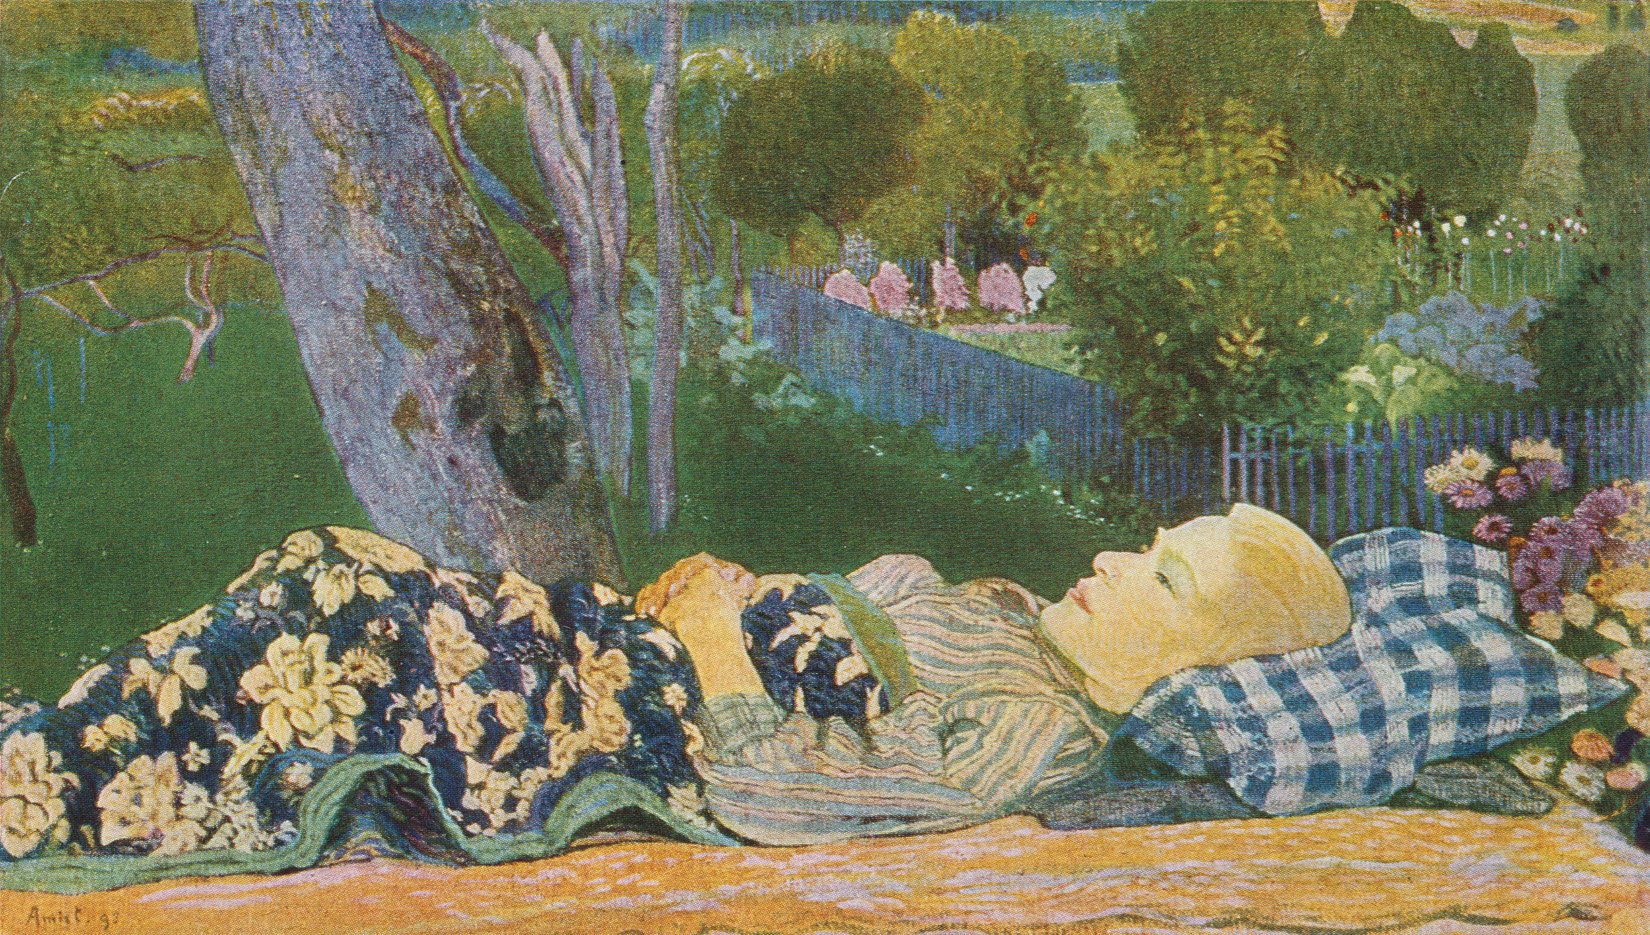 Cuno Amiet, The Sick Boy, 1895, burned in Munich, 1931